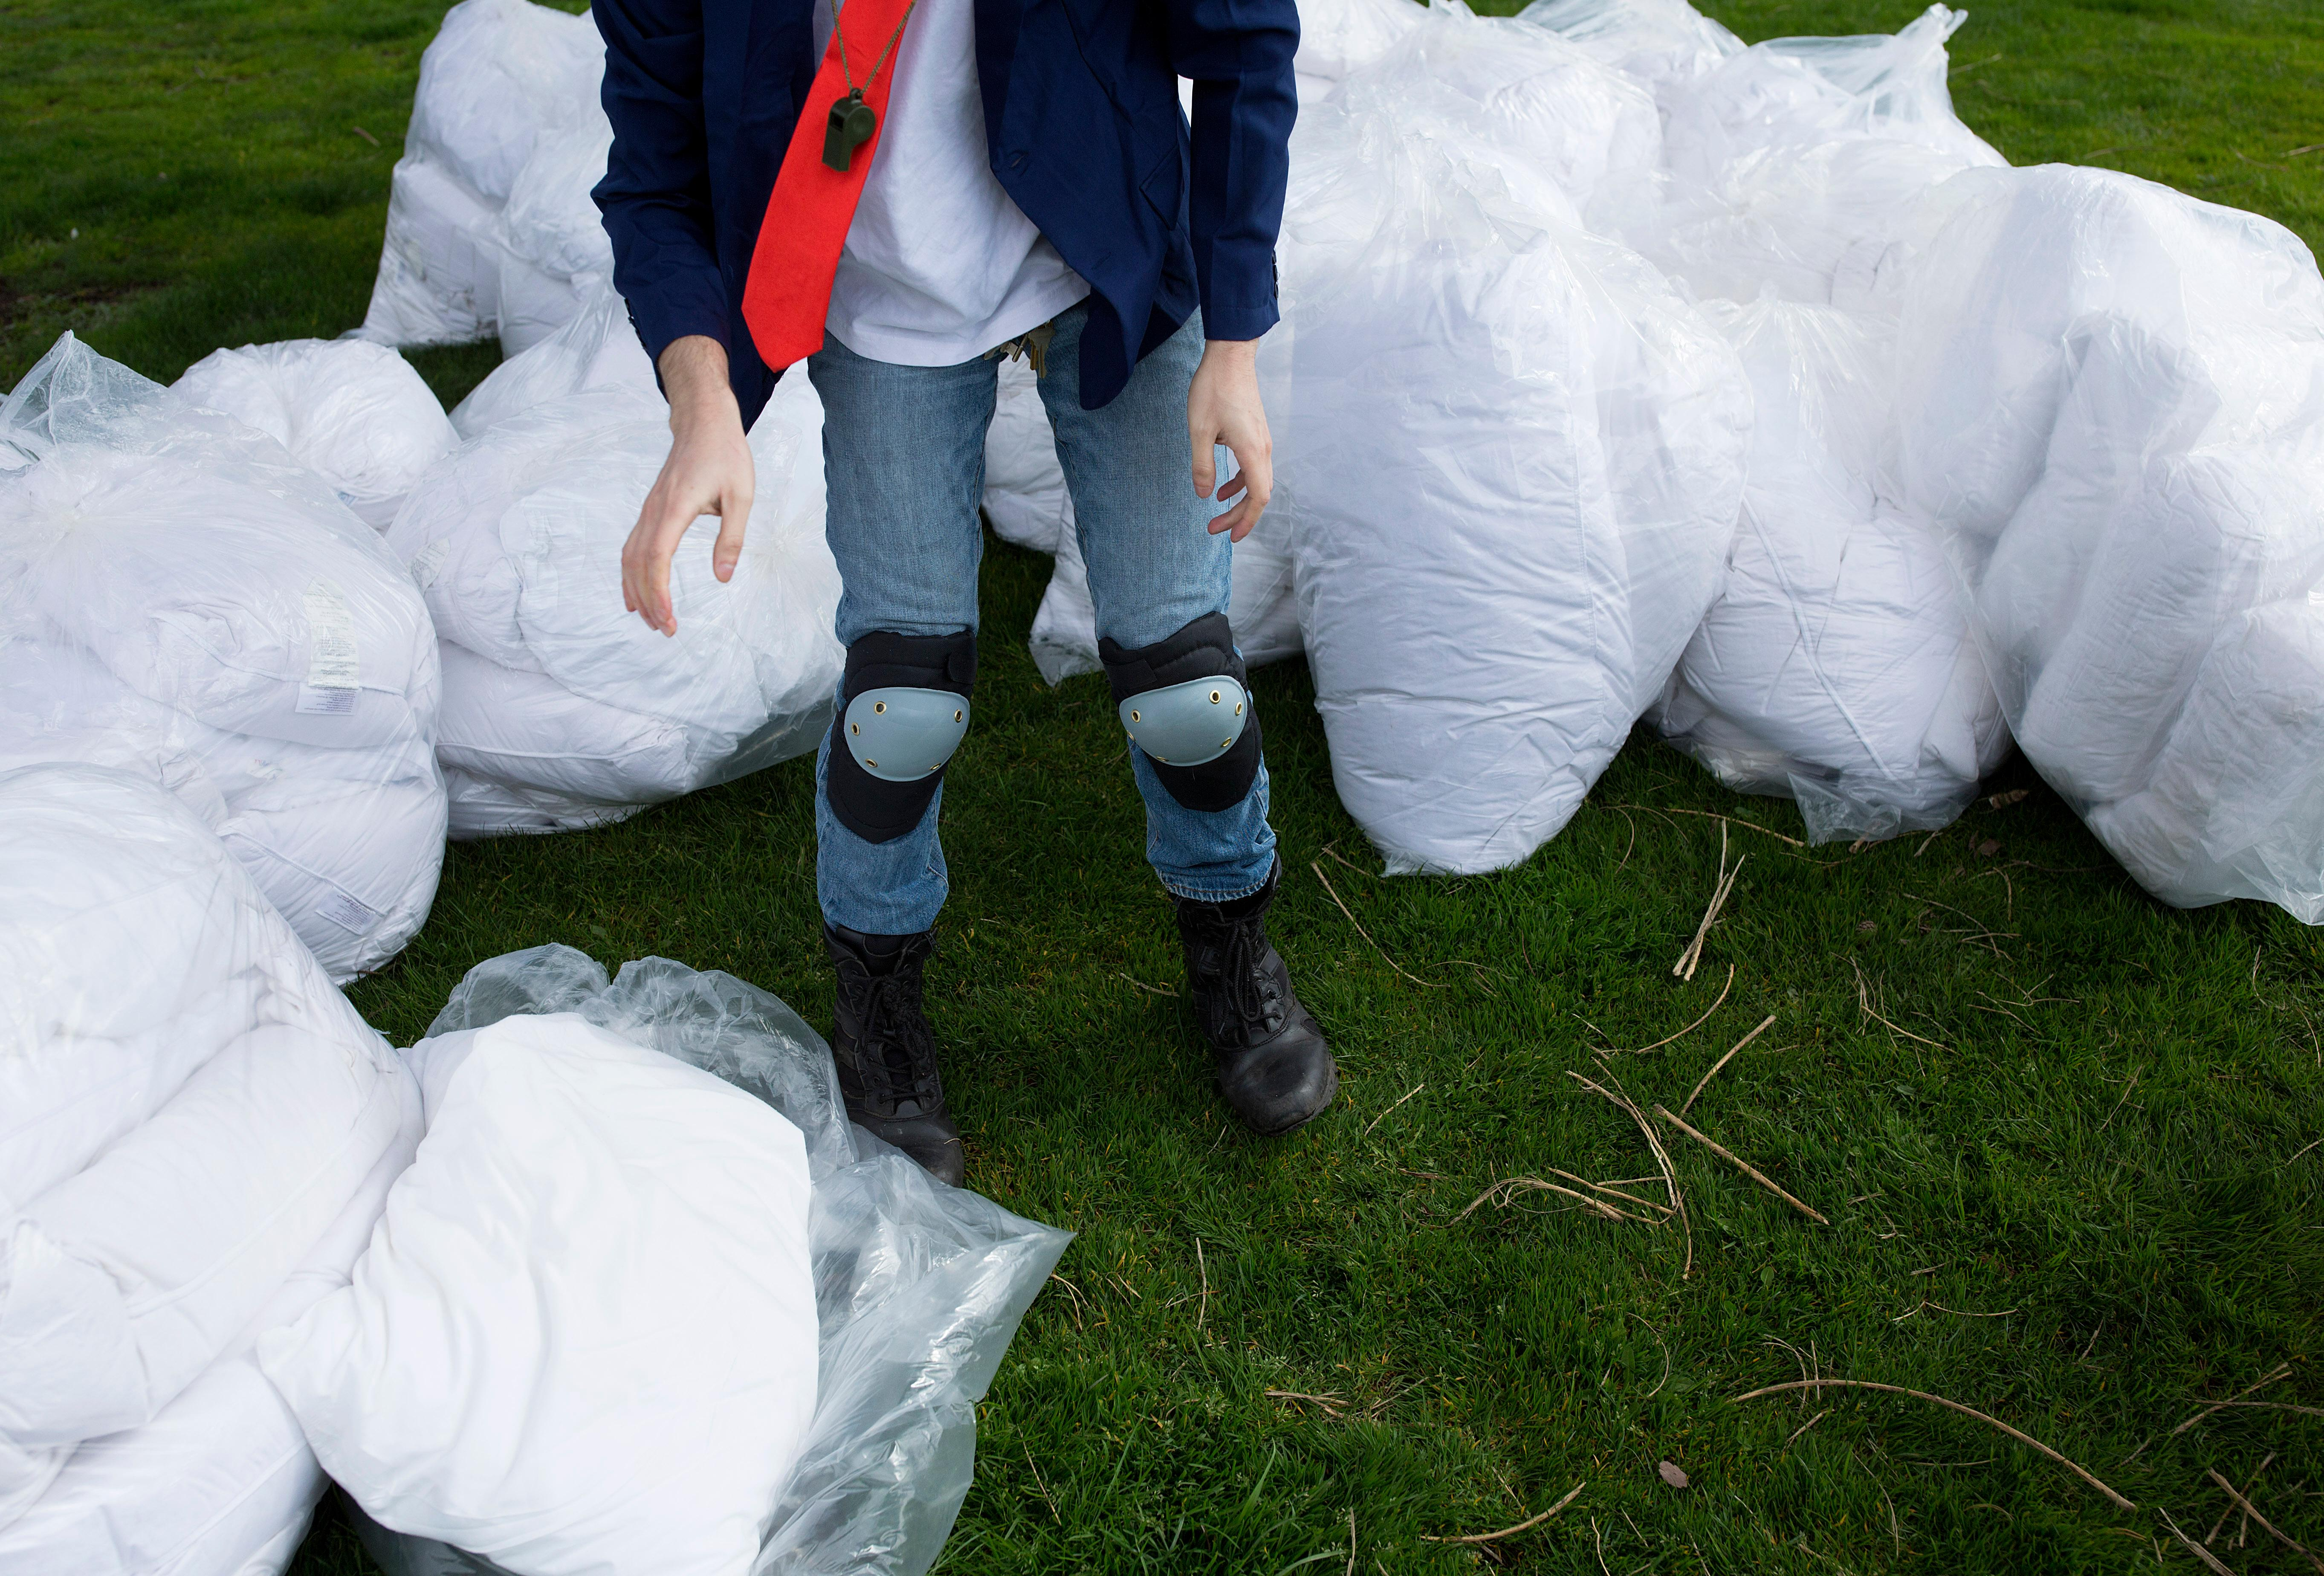 A massive pillow fight broke out at Cal Anderson Park on Capitol Hill for International Pillow Fight Day. Pillows were donated by a local hotel, and cash donations by participants will go to local homeless shelters, Compass Housing Alliance and DESC. (Sy Bean / Seattle Refined)